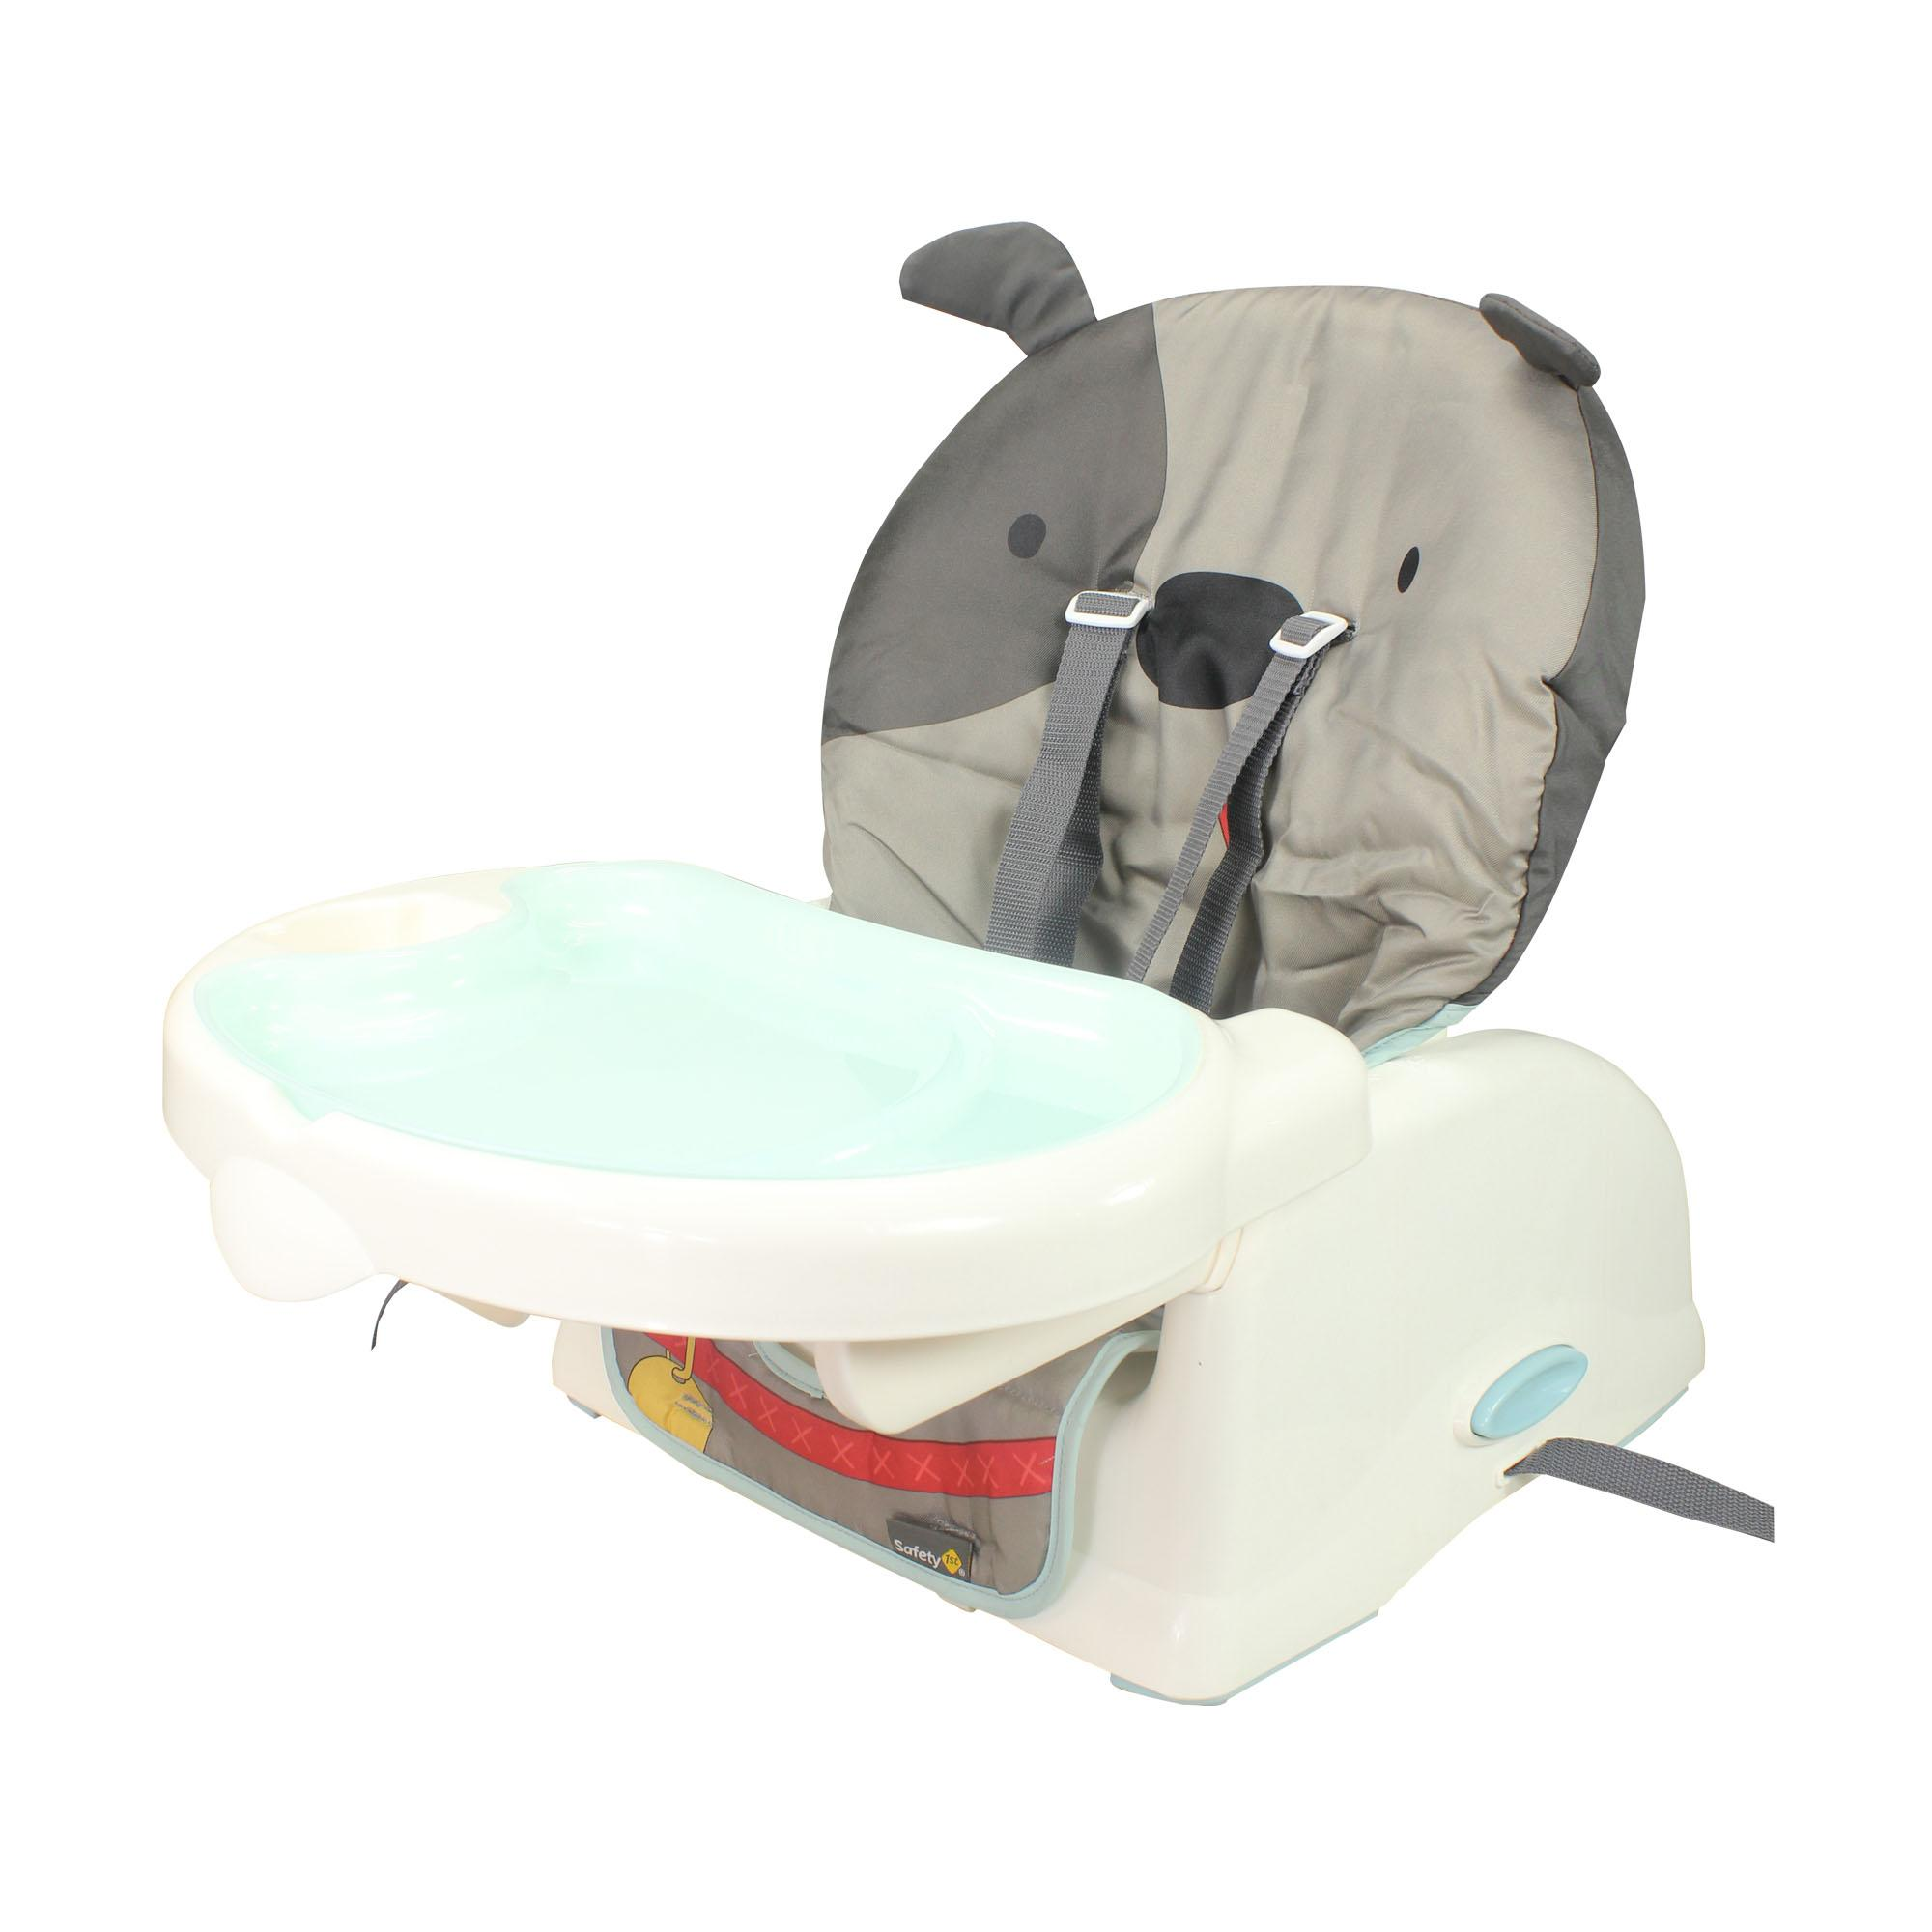 Unicorn Safety First Recline and Grow Booster Feeding Seat Baby Chair with Removable Tray image